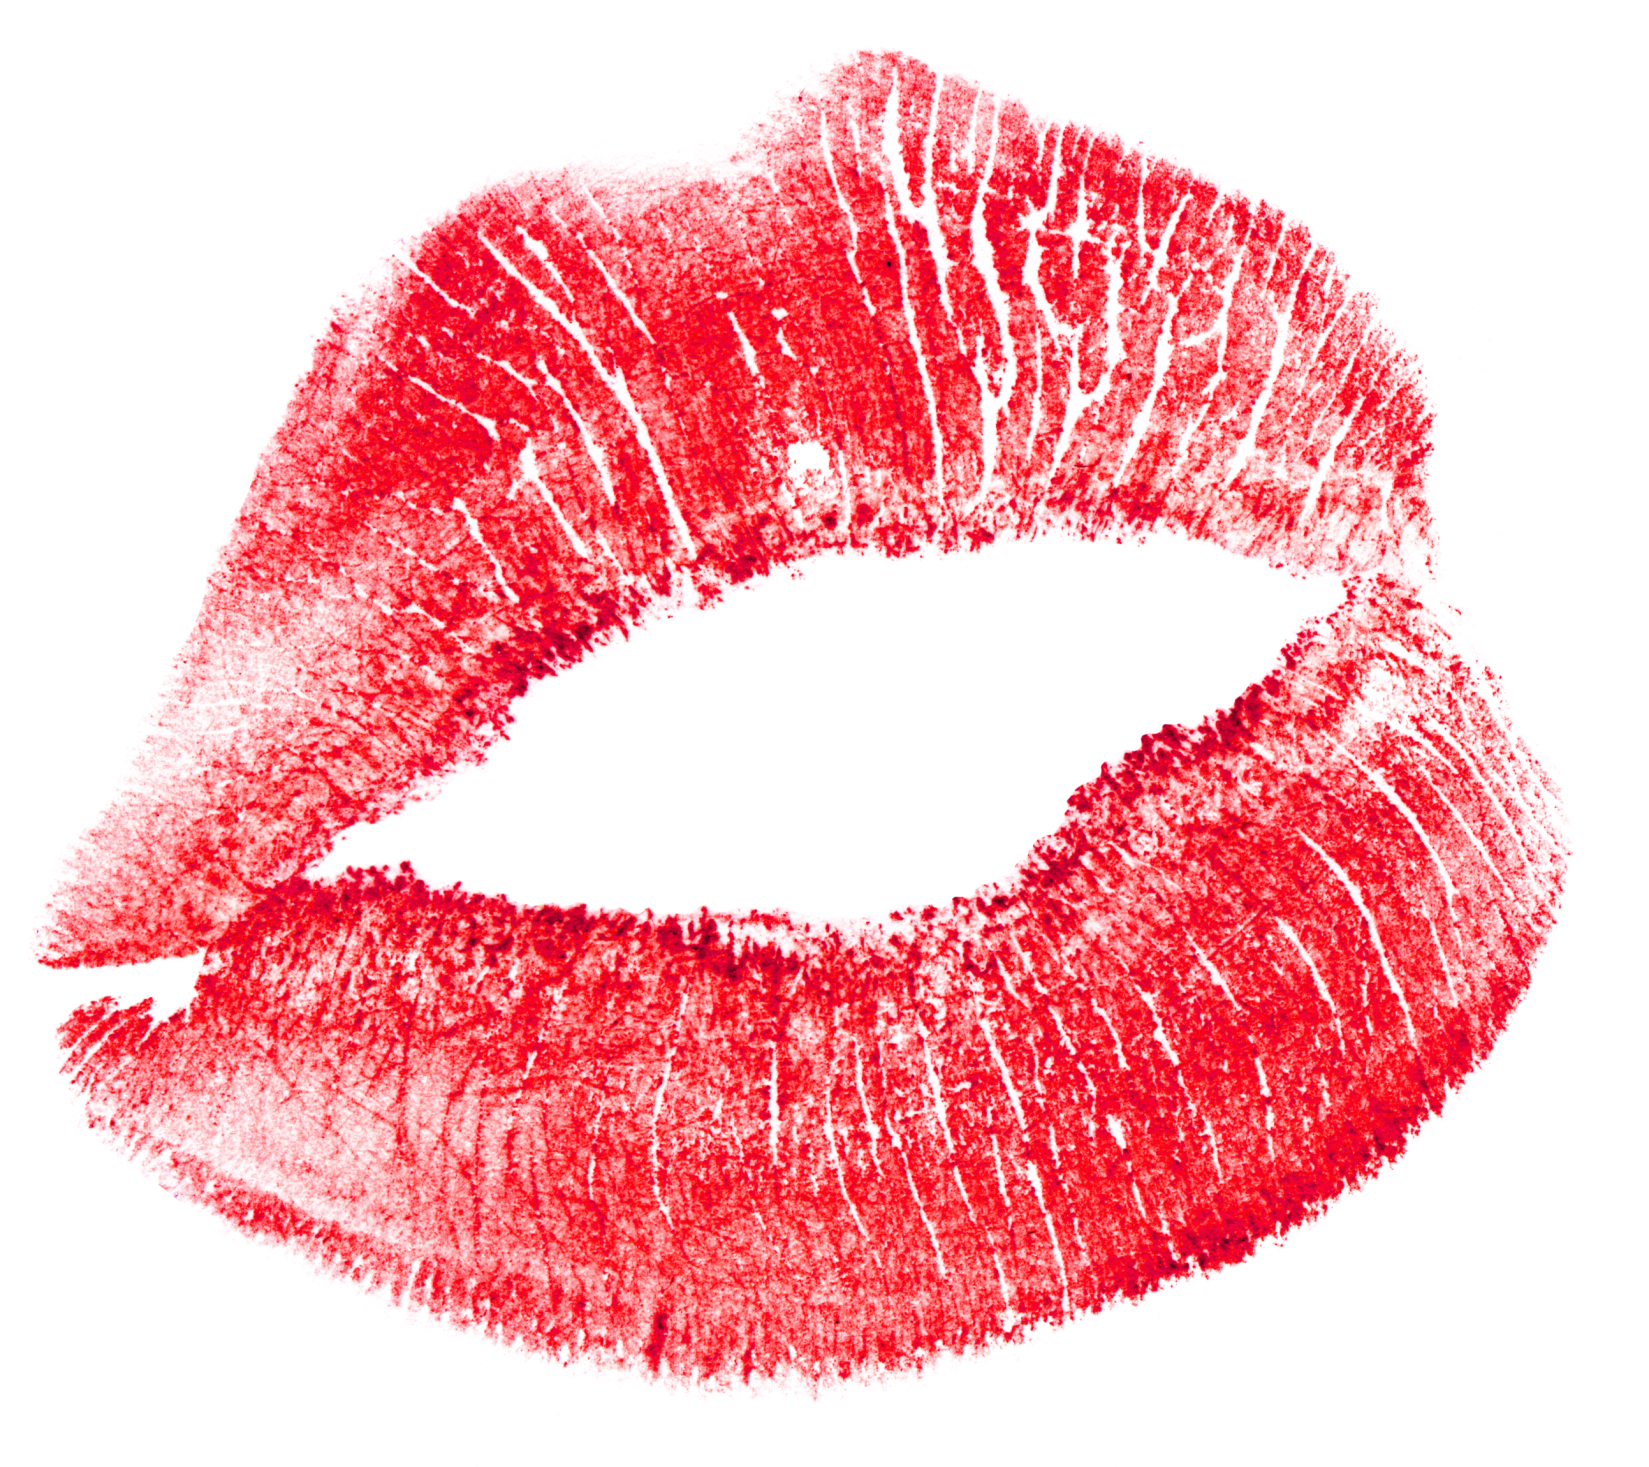 Kiss PNG images free download.